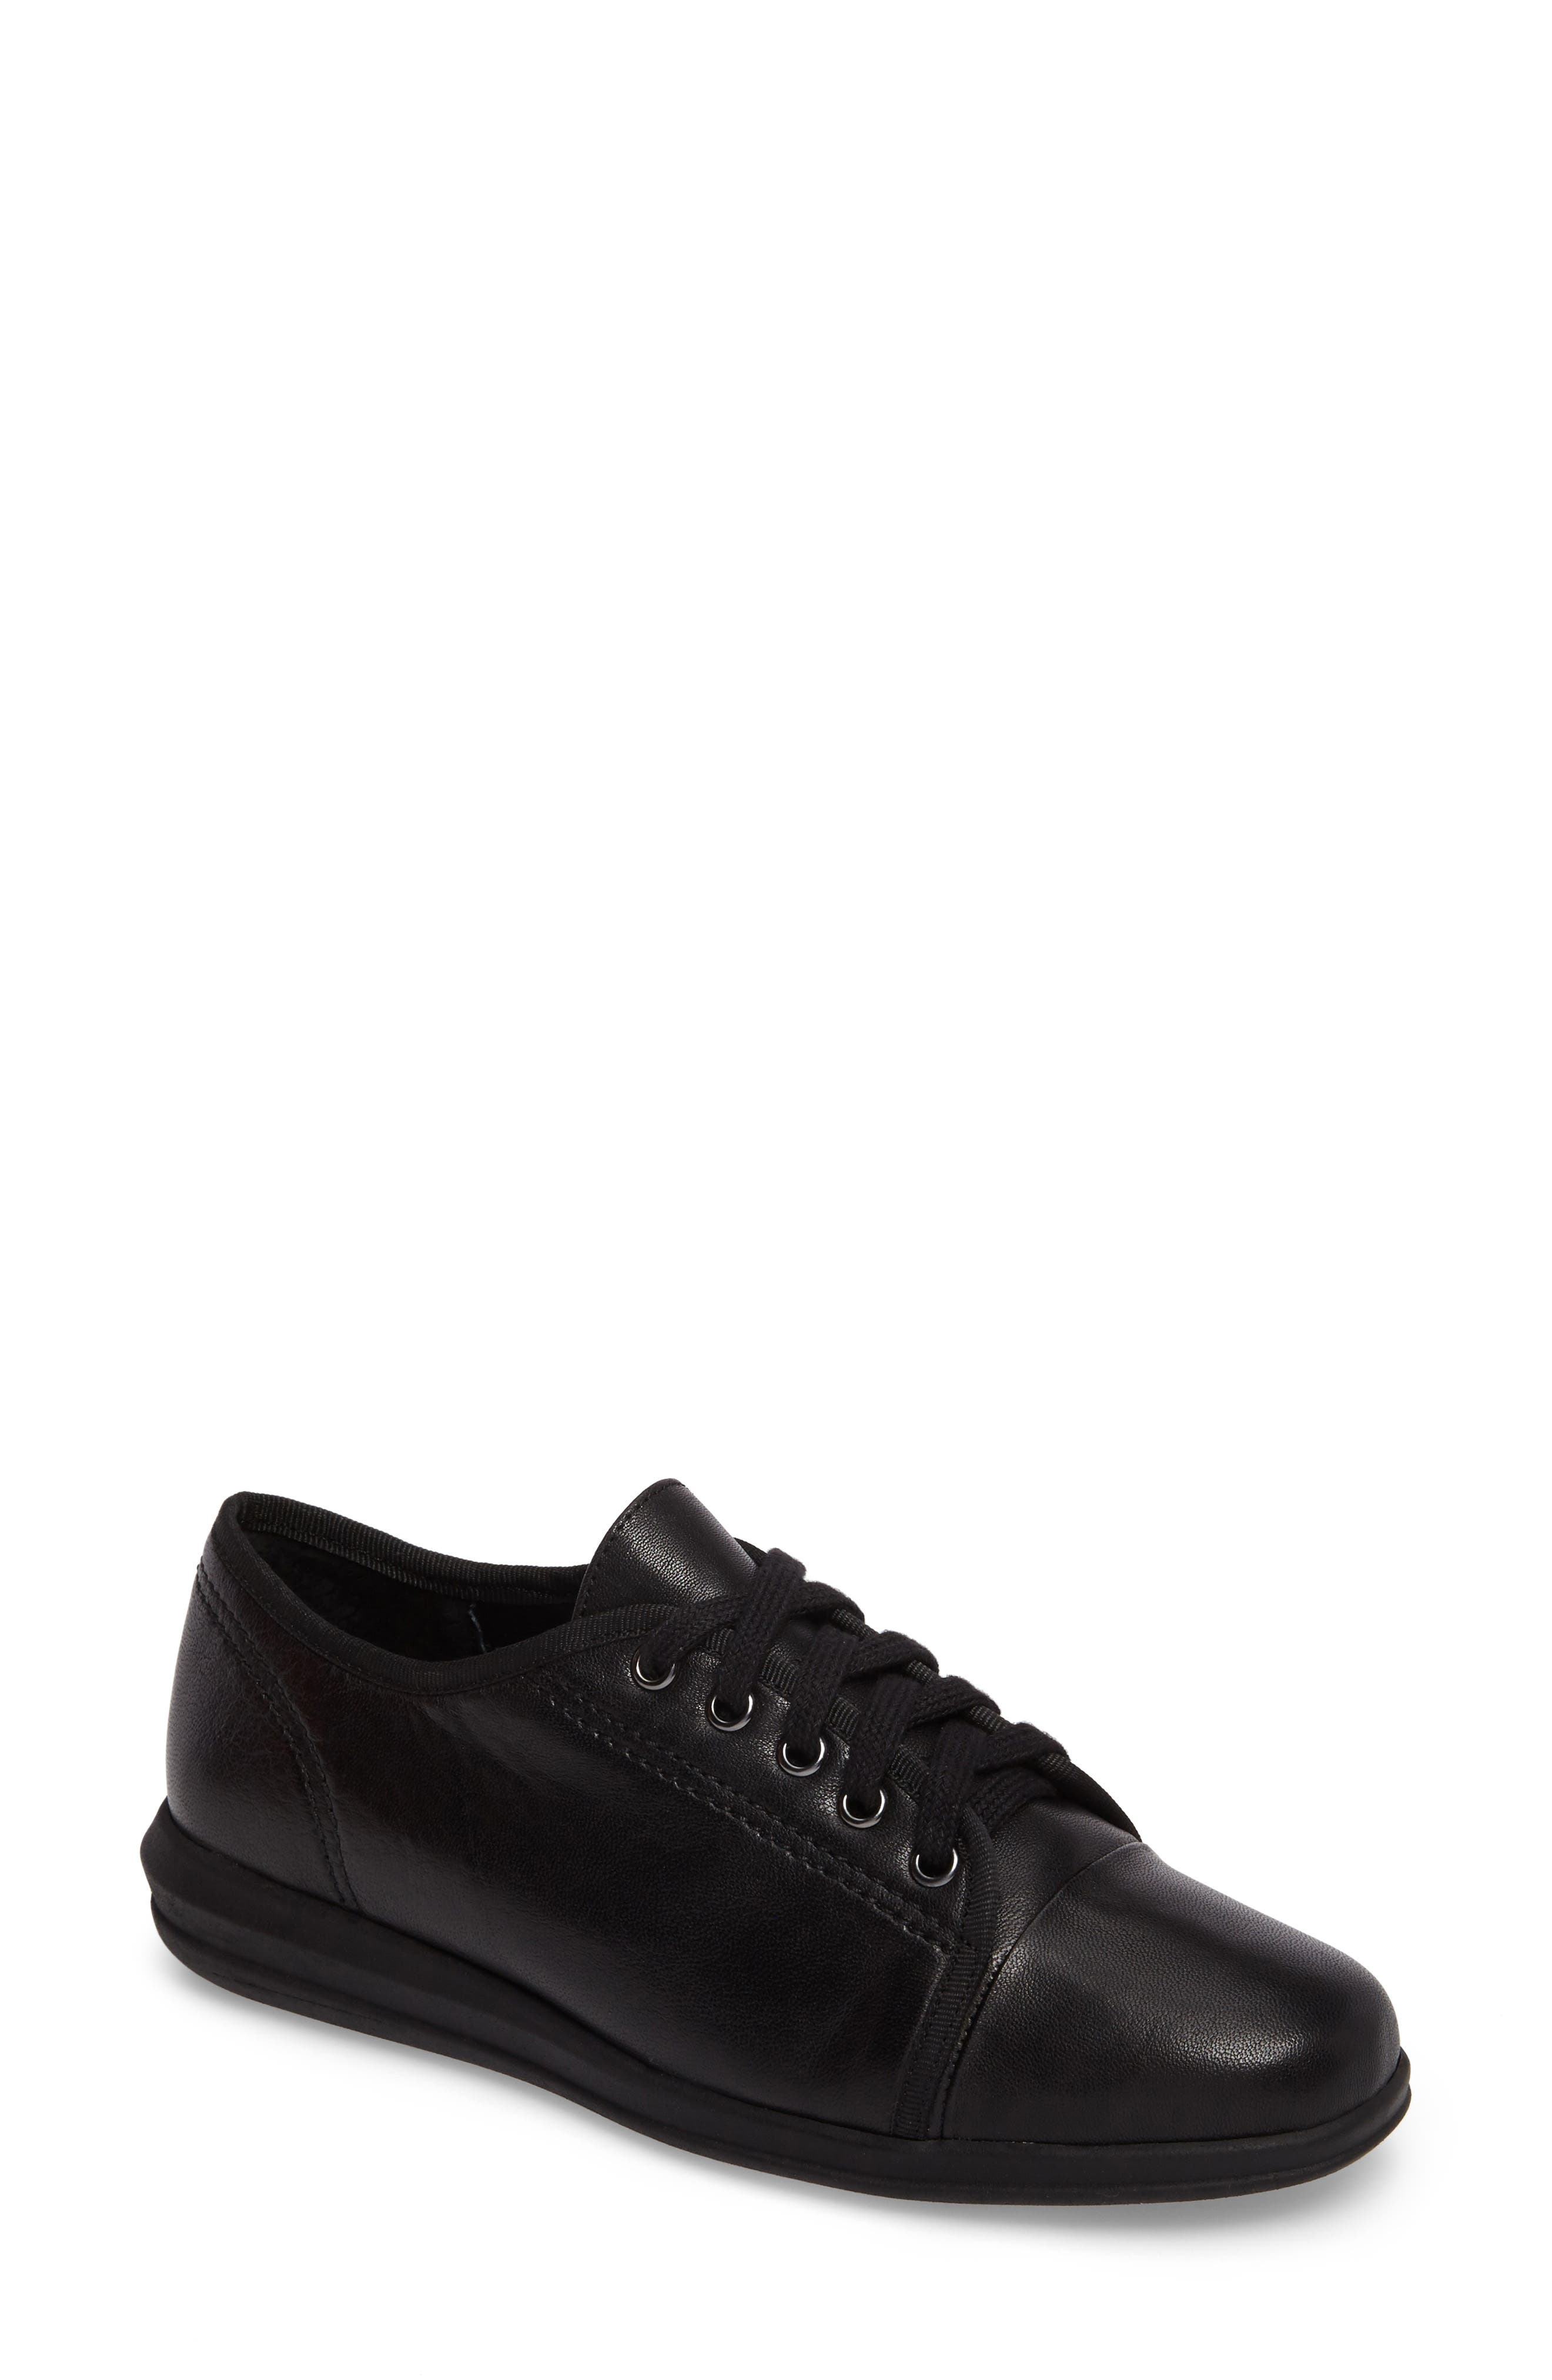 Siren Sneaker,                         Main,                         color, BLACK LEATHER